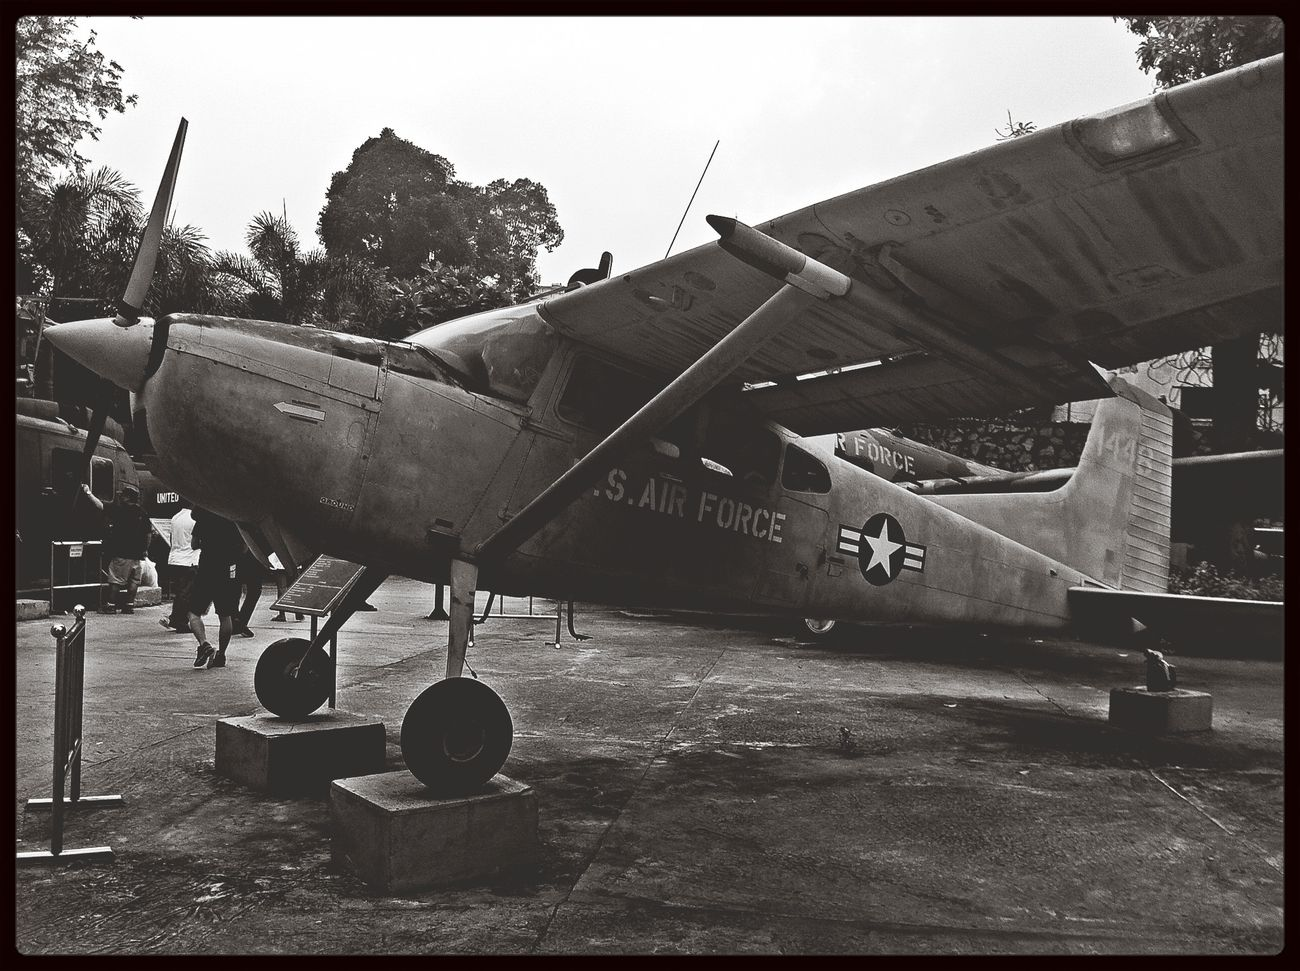 War Flight Memories at War Remnants Museum Ho Chi Minh City